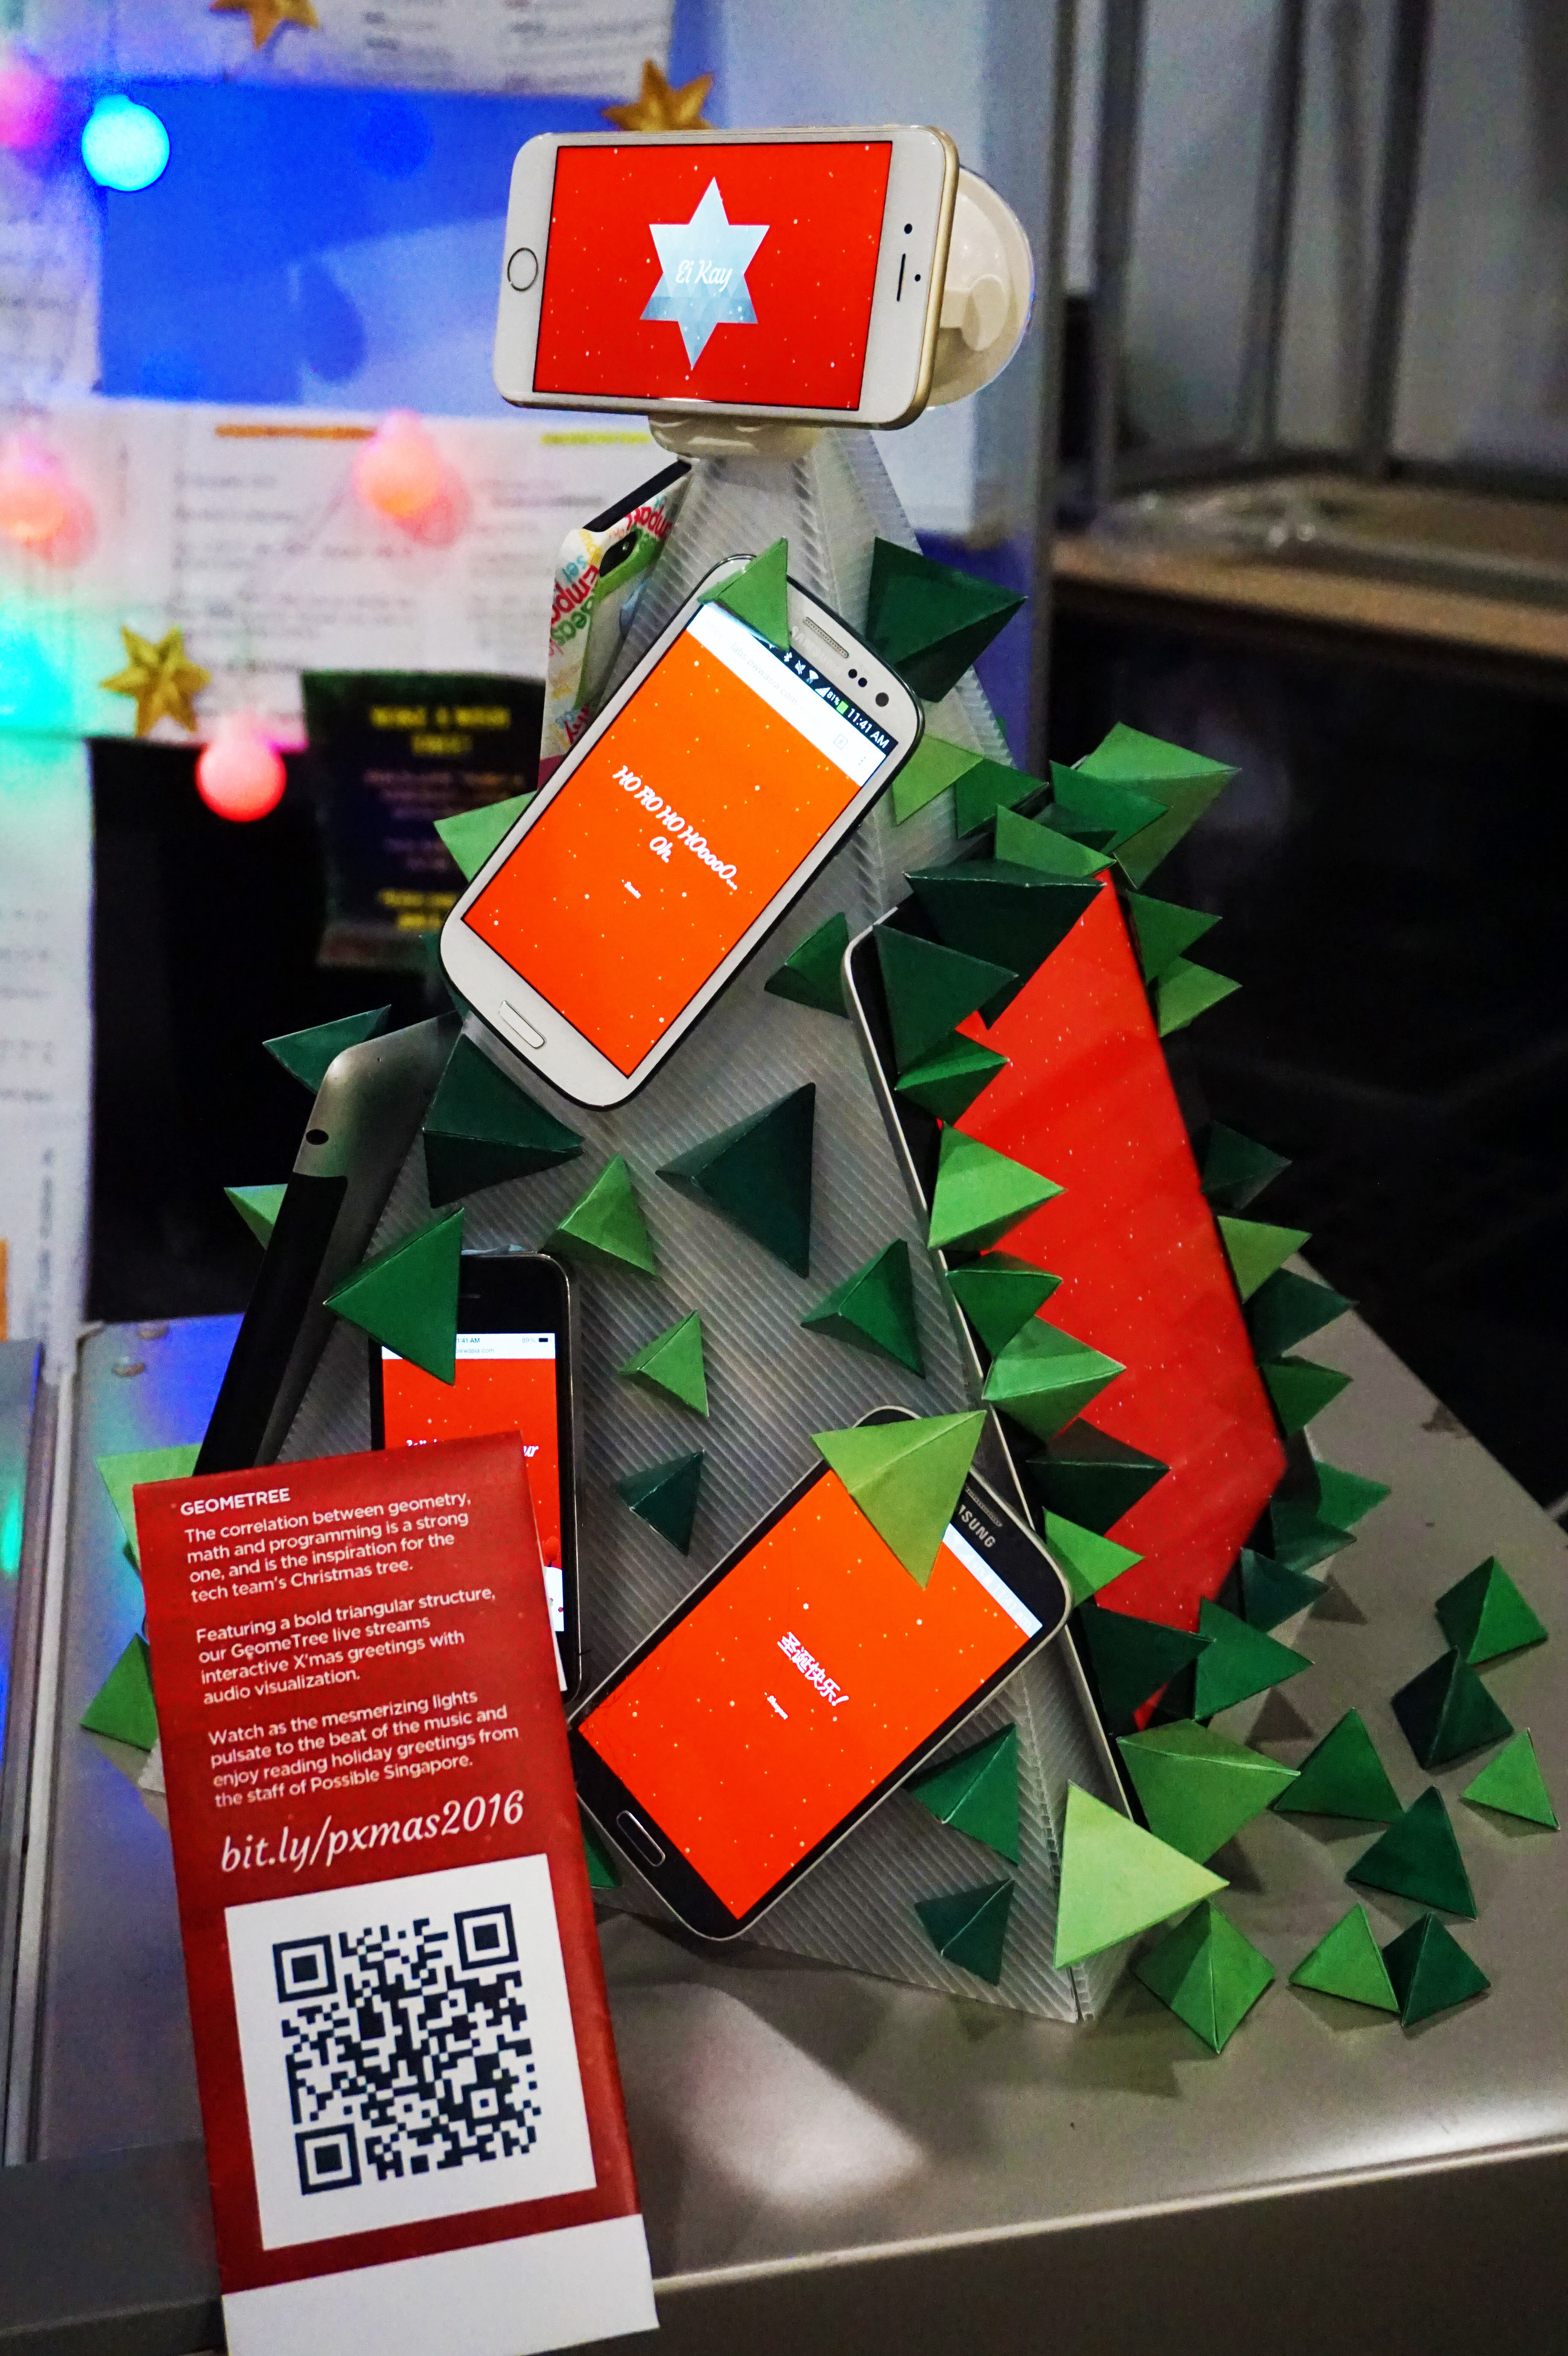 """Tech's """"Geometree,"""" which was fully interactive and displayed a feed of messages that you could submit via Google form or using the hashtag #pxmas16"""